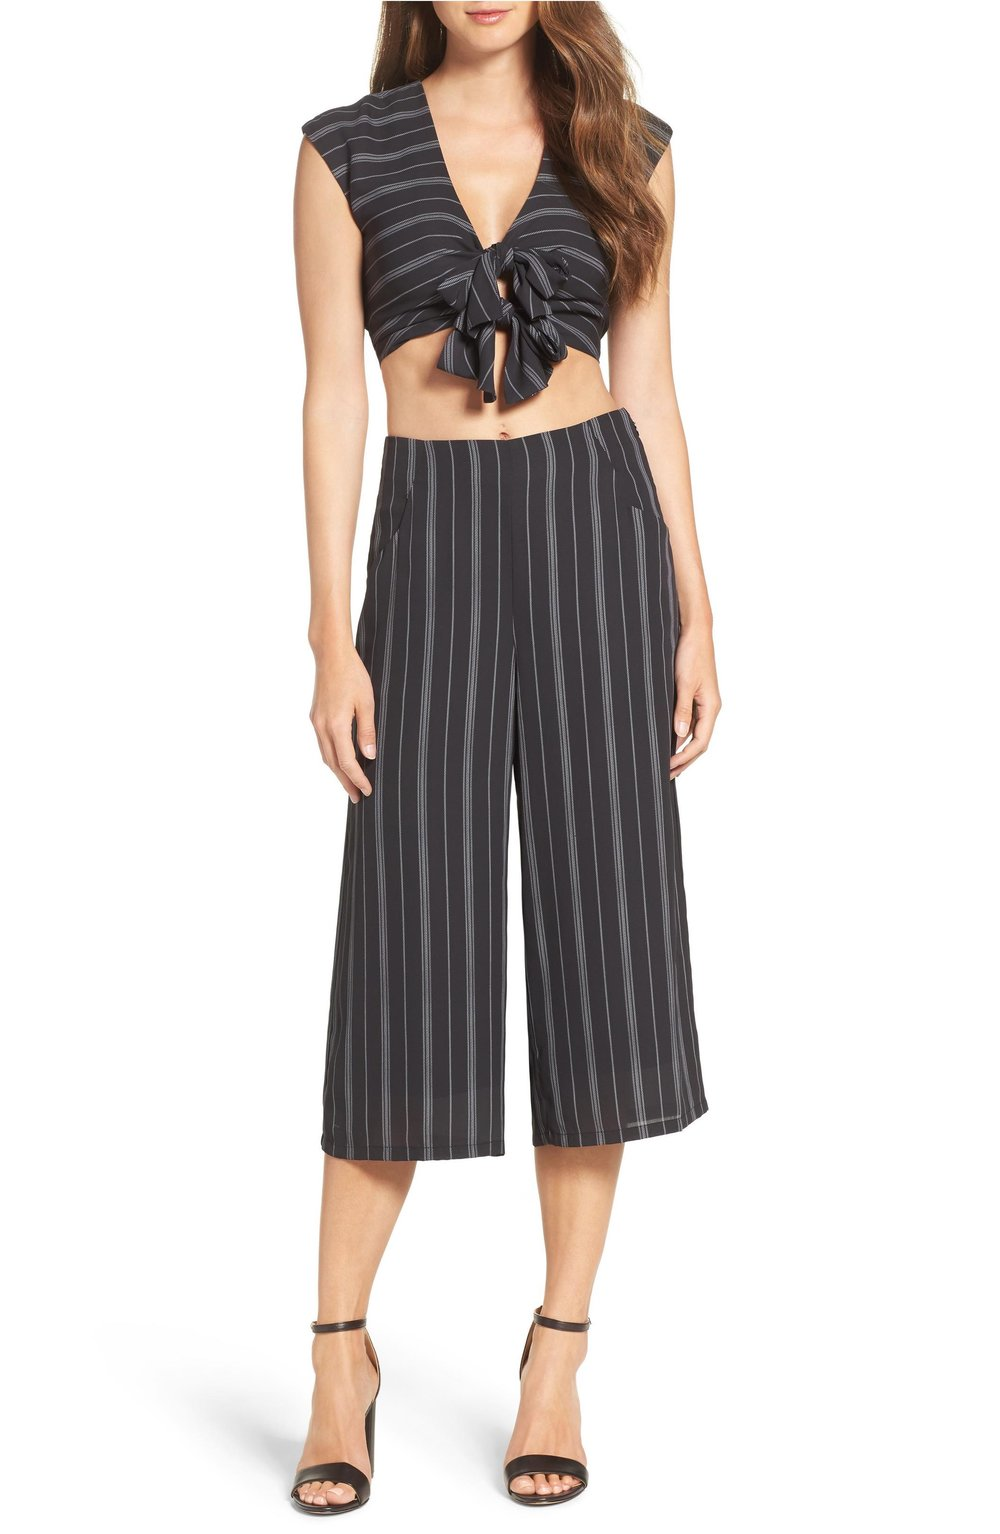 Ali & Jay poolside periodicals crop top & culottes set